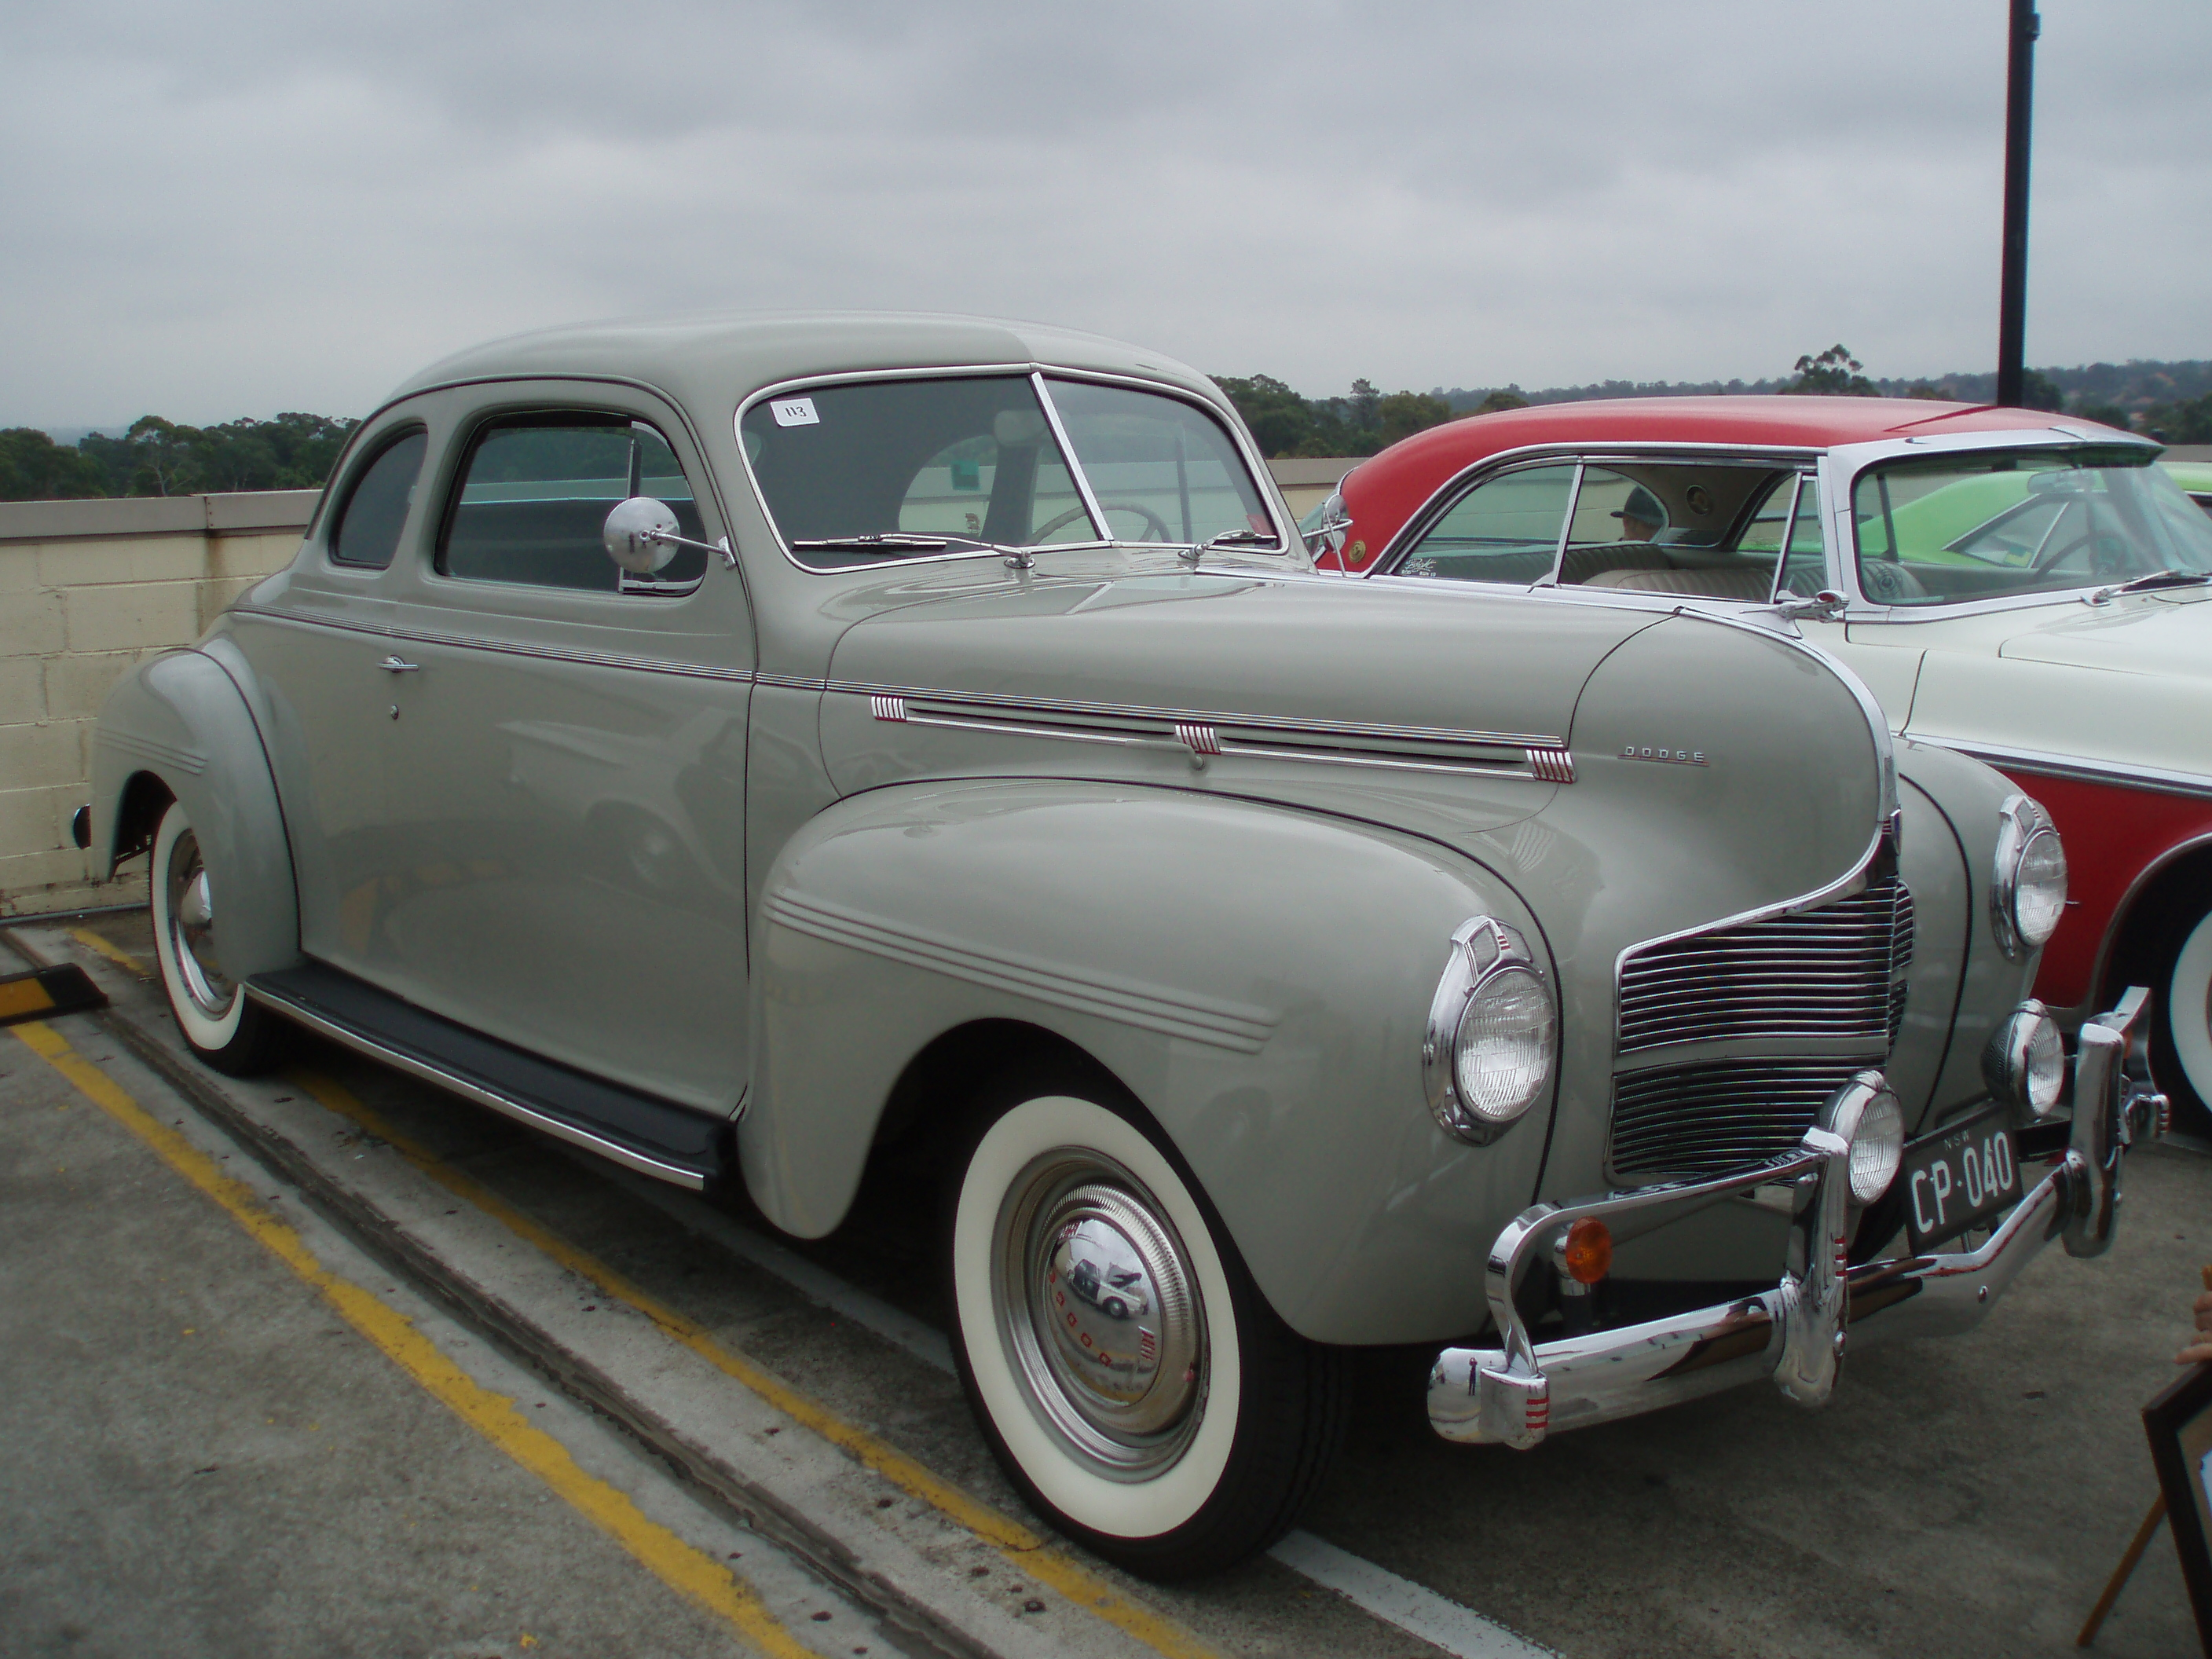 File:1940 Dodge D14 Deluxe Business Coupe (5409386201).jpg - Wikimedia Commons